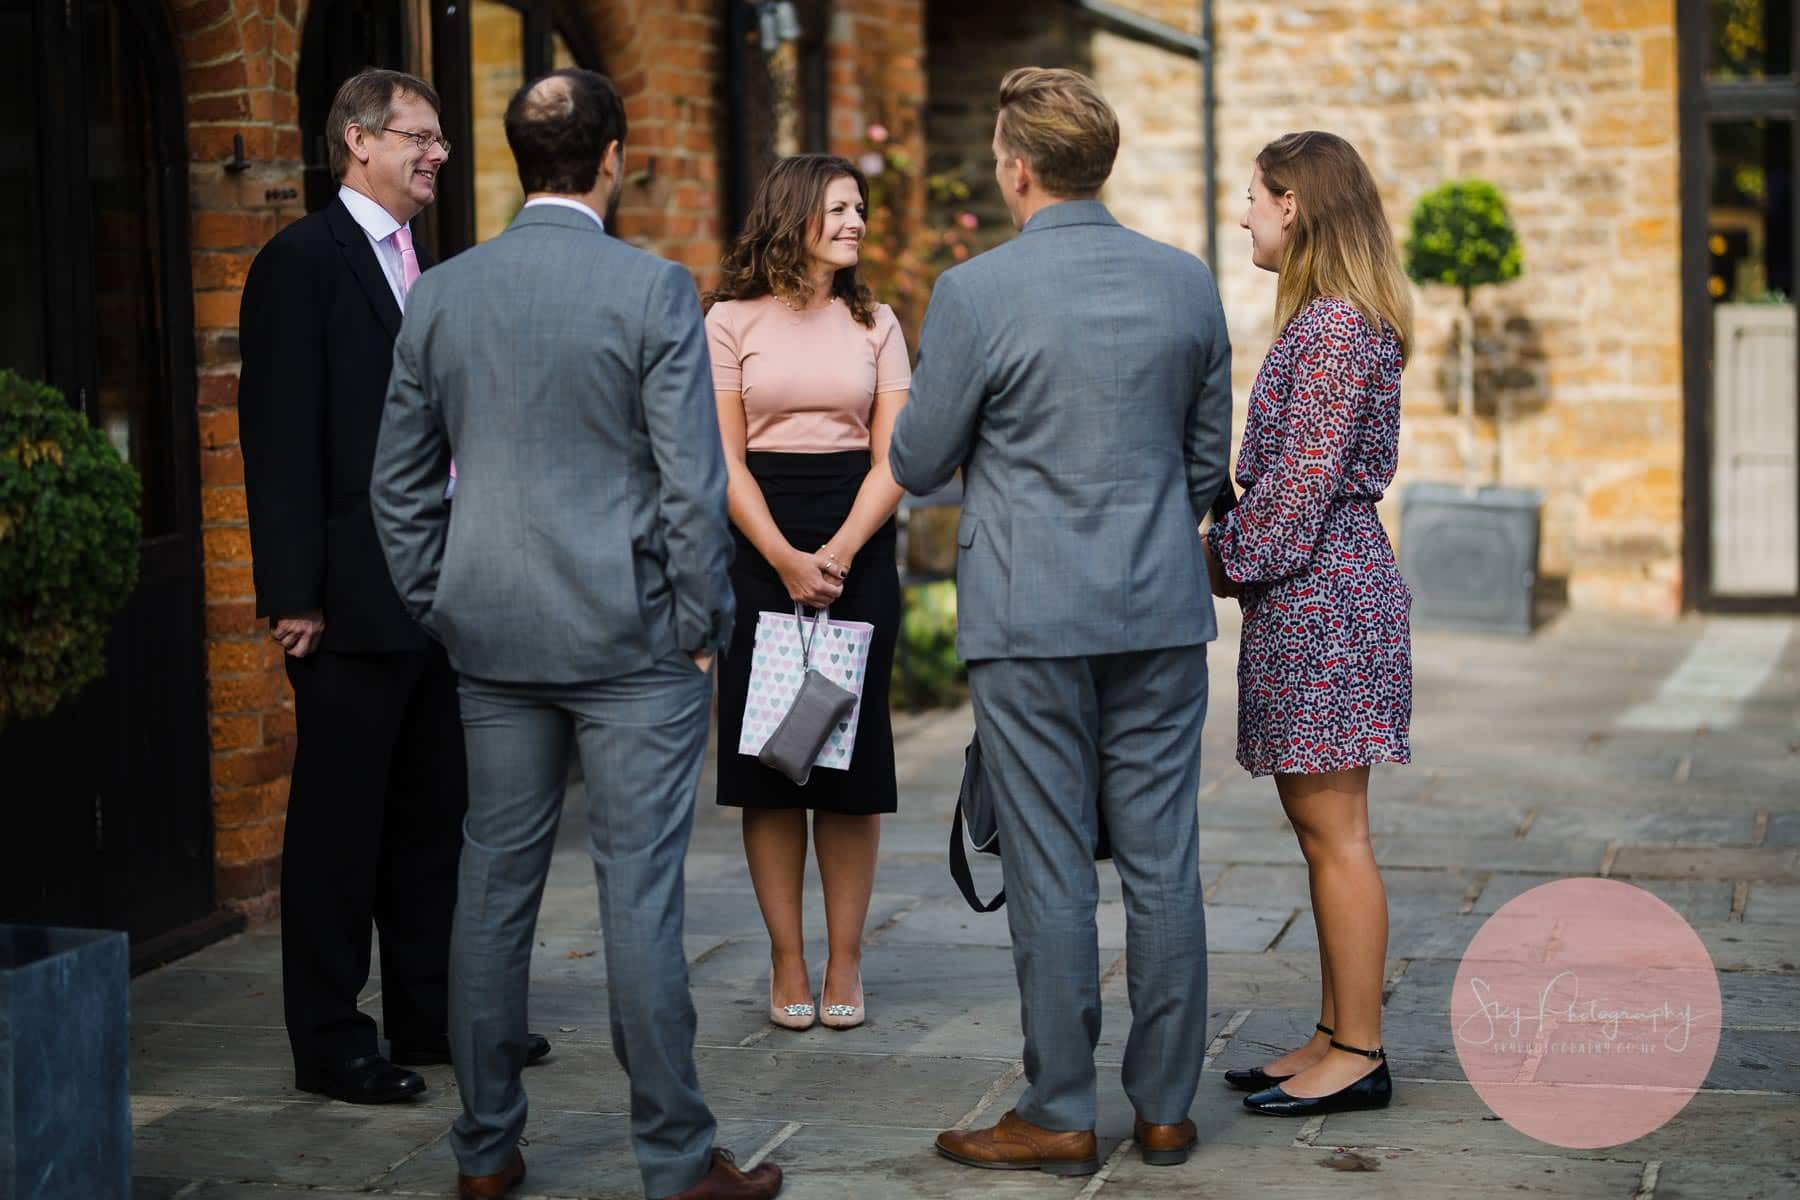 firsts wedding guests arrive